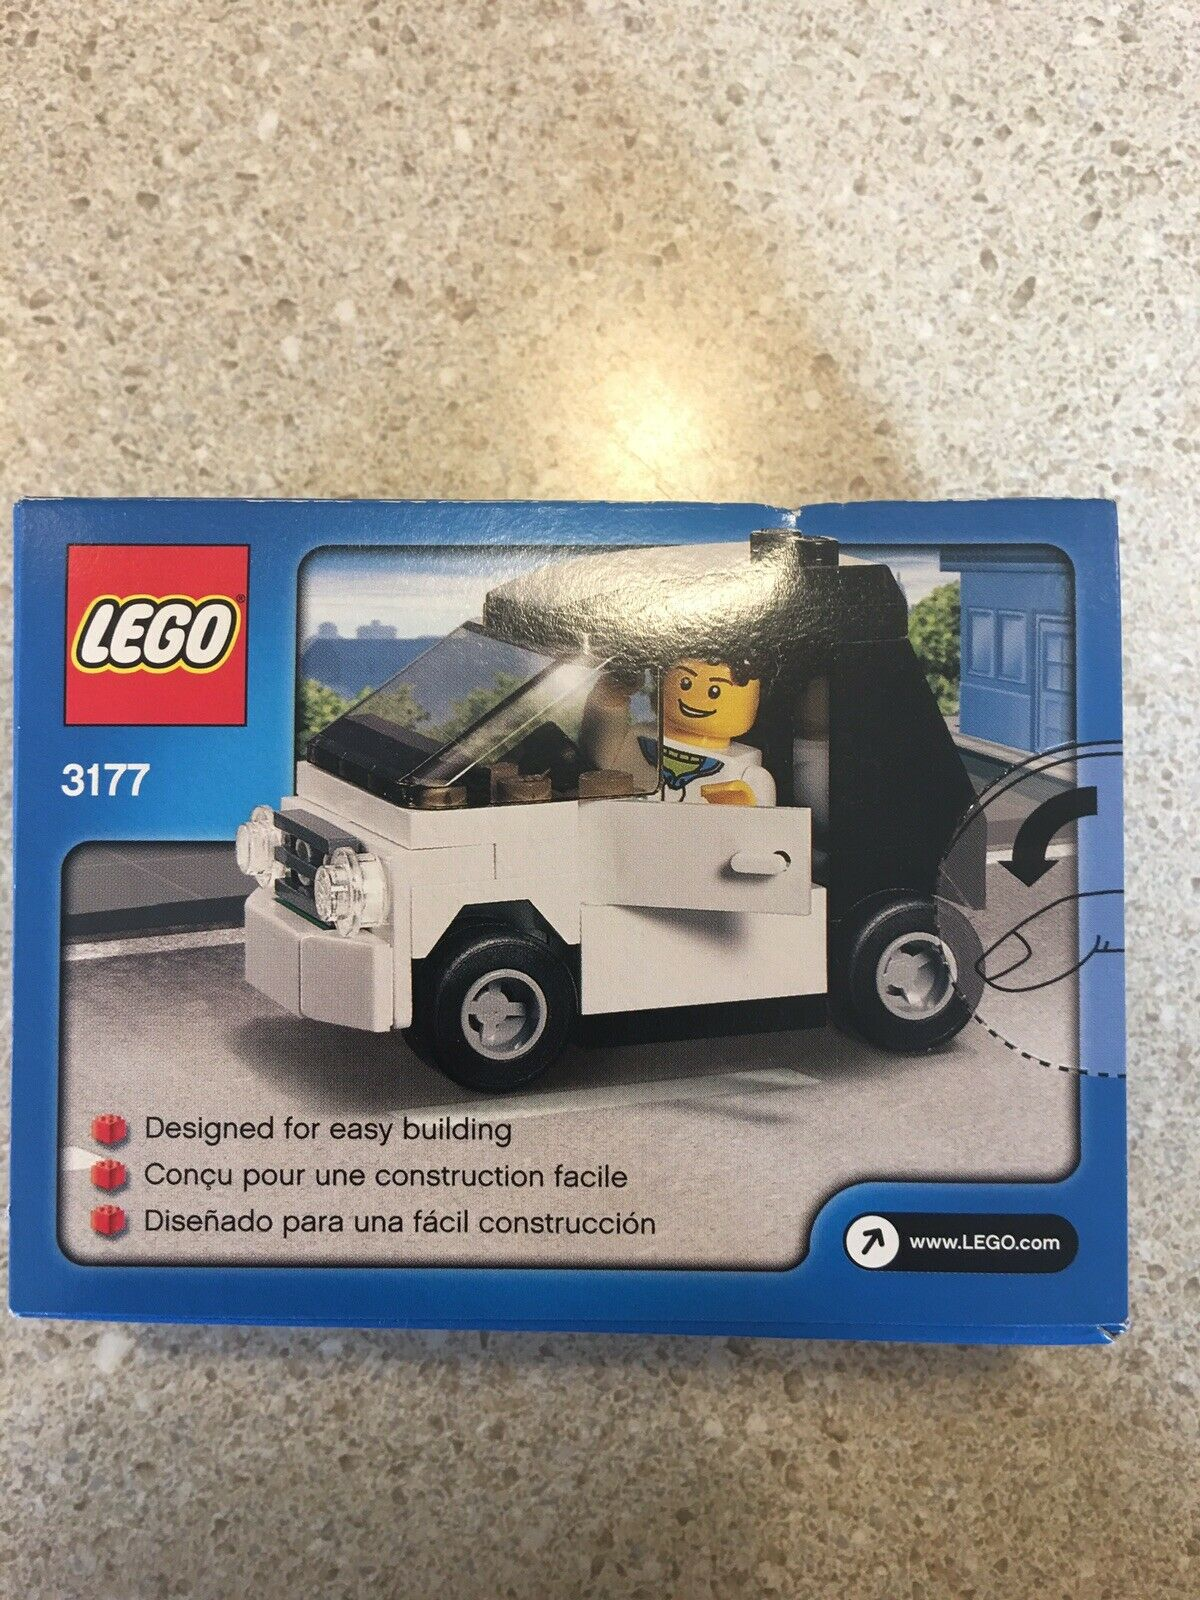 Lego Small Car 3177 New New New In Box 575123